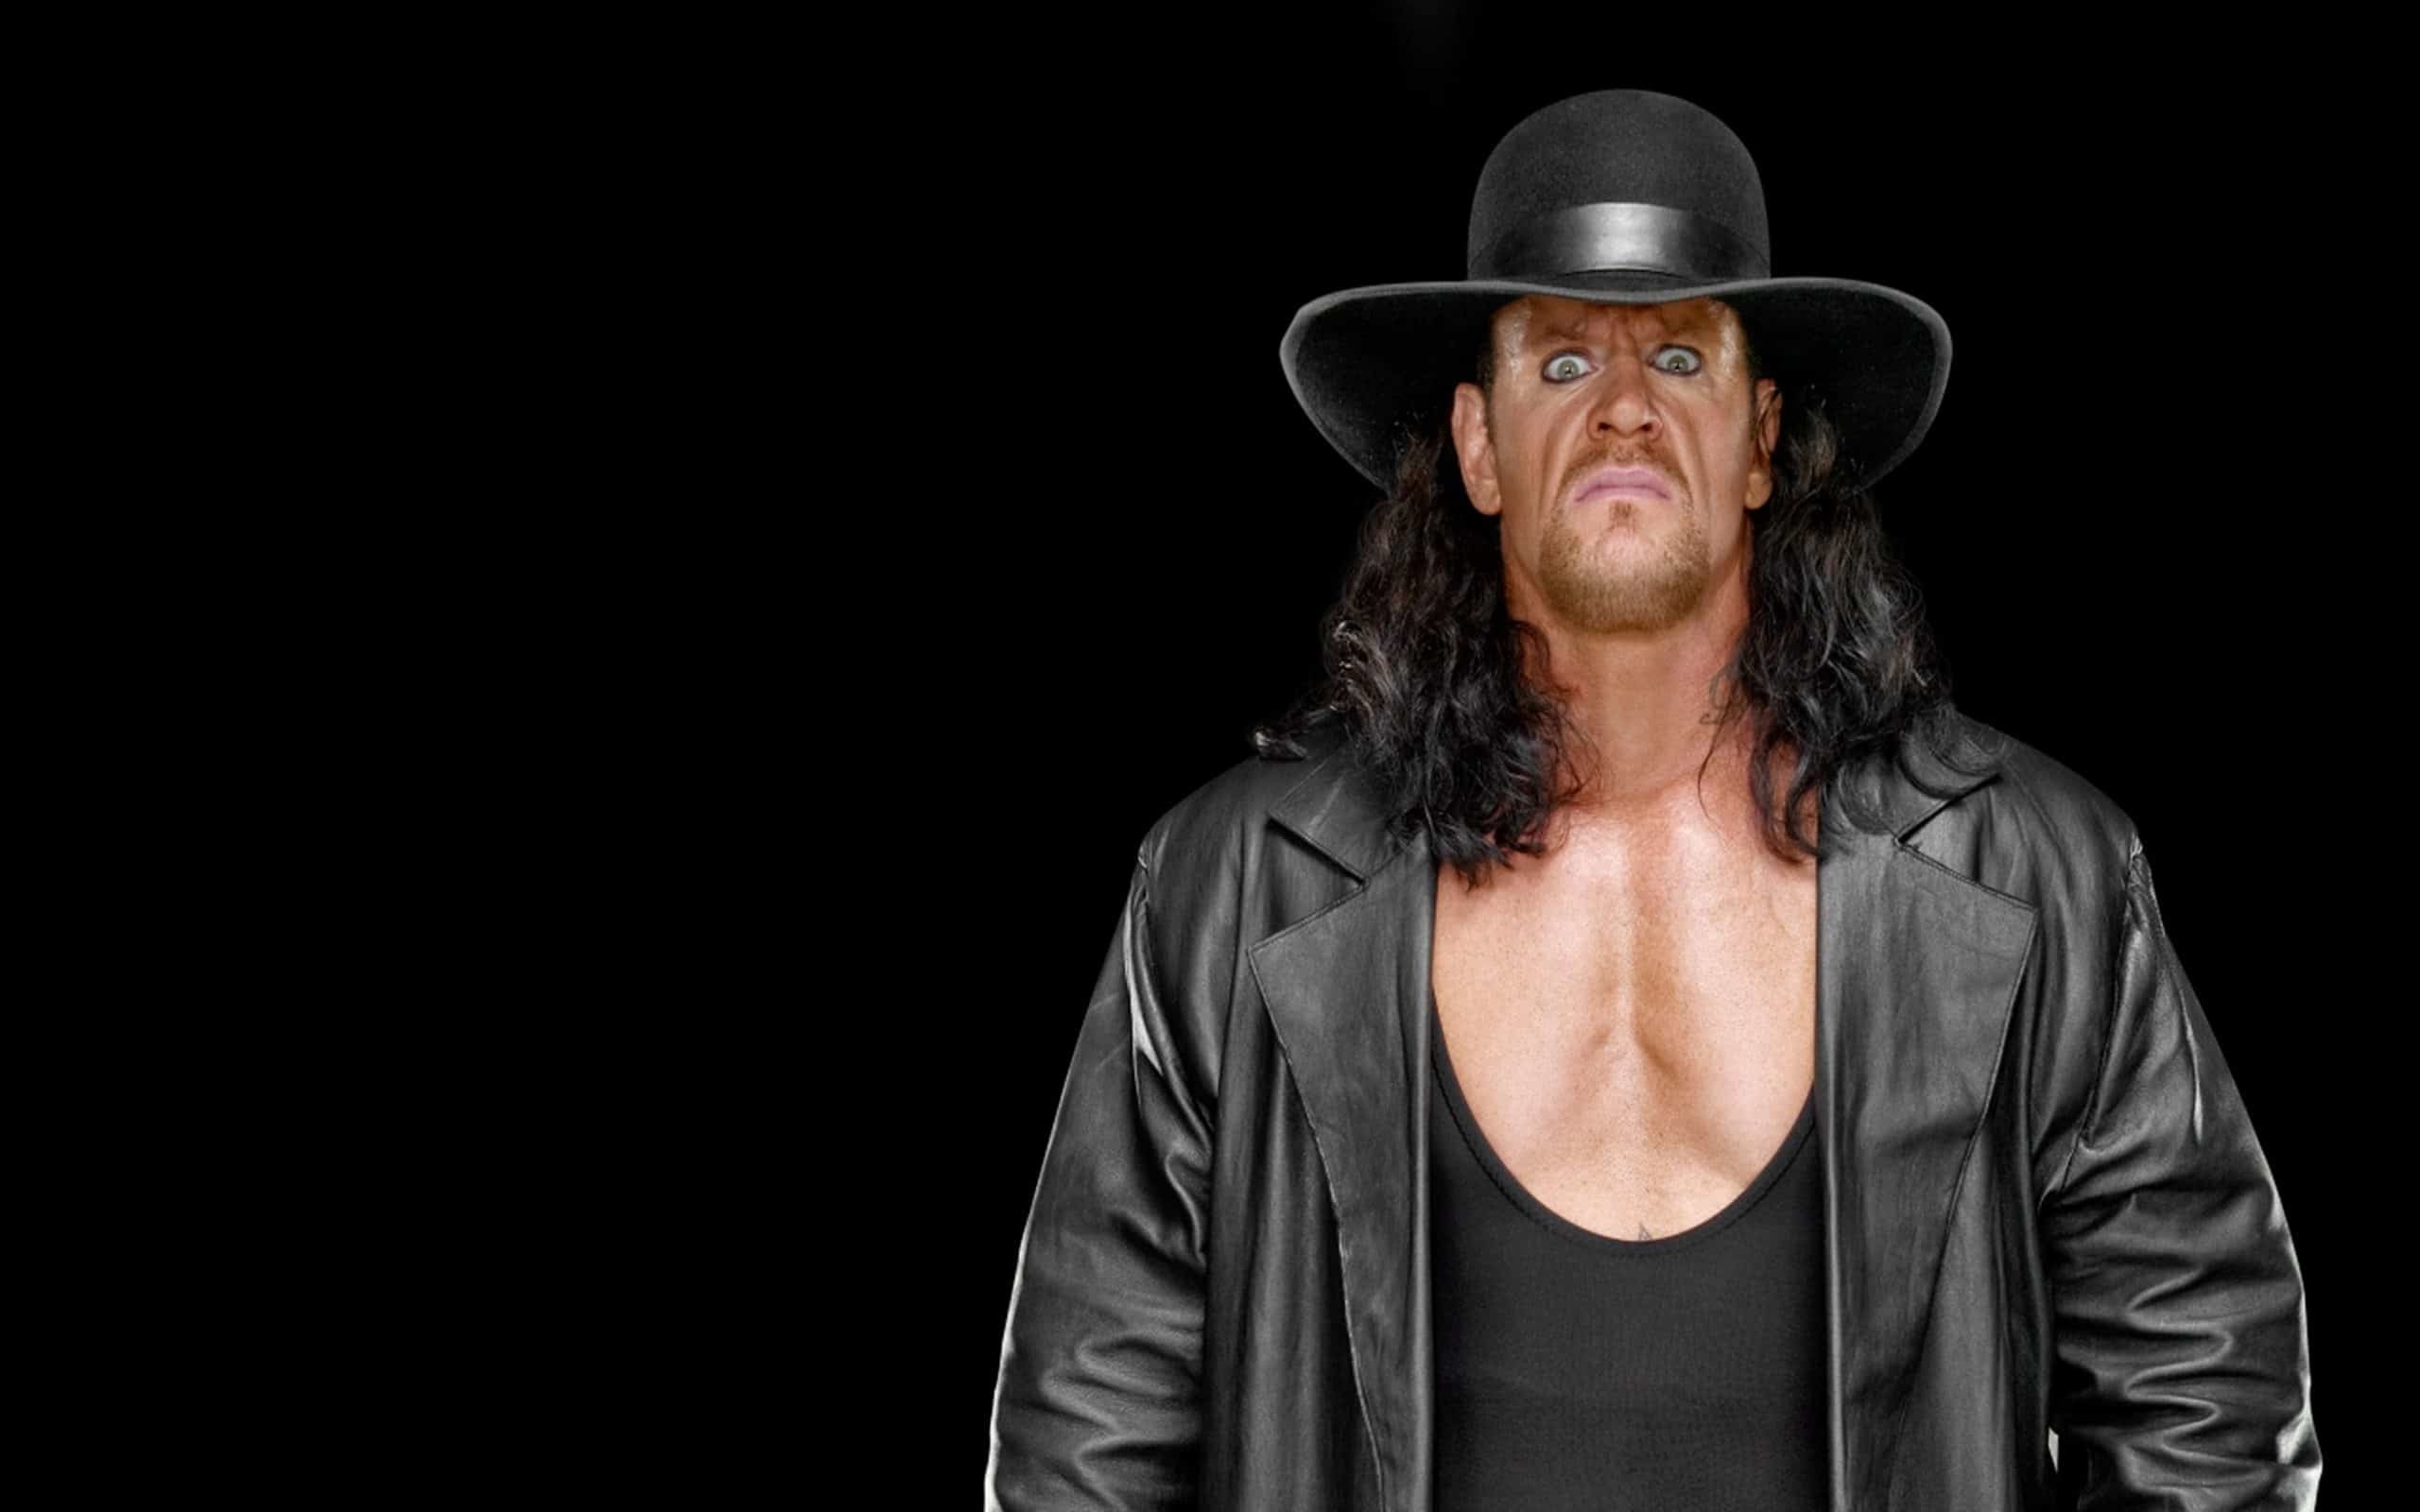 undertaker hd photo